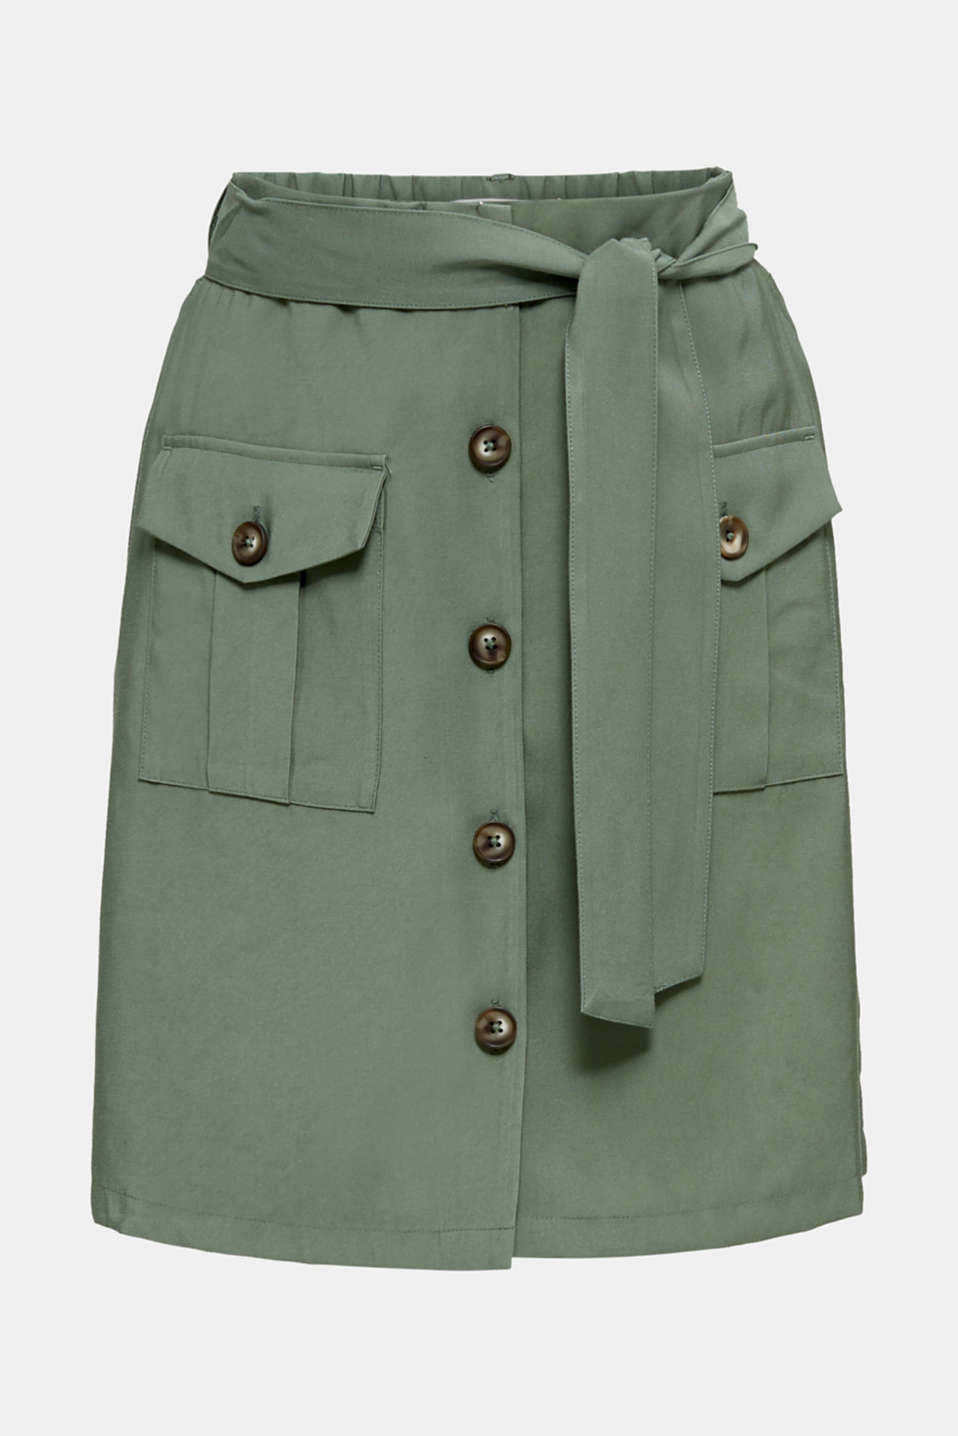 Skirt shorts in a utility look, KHAKI GREEN, detail image number 6